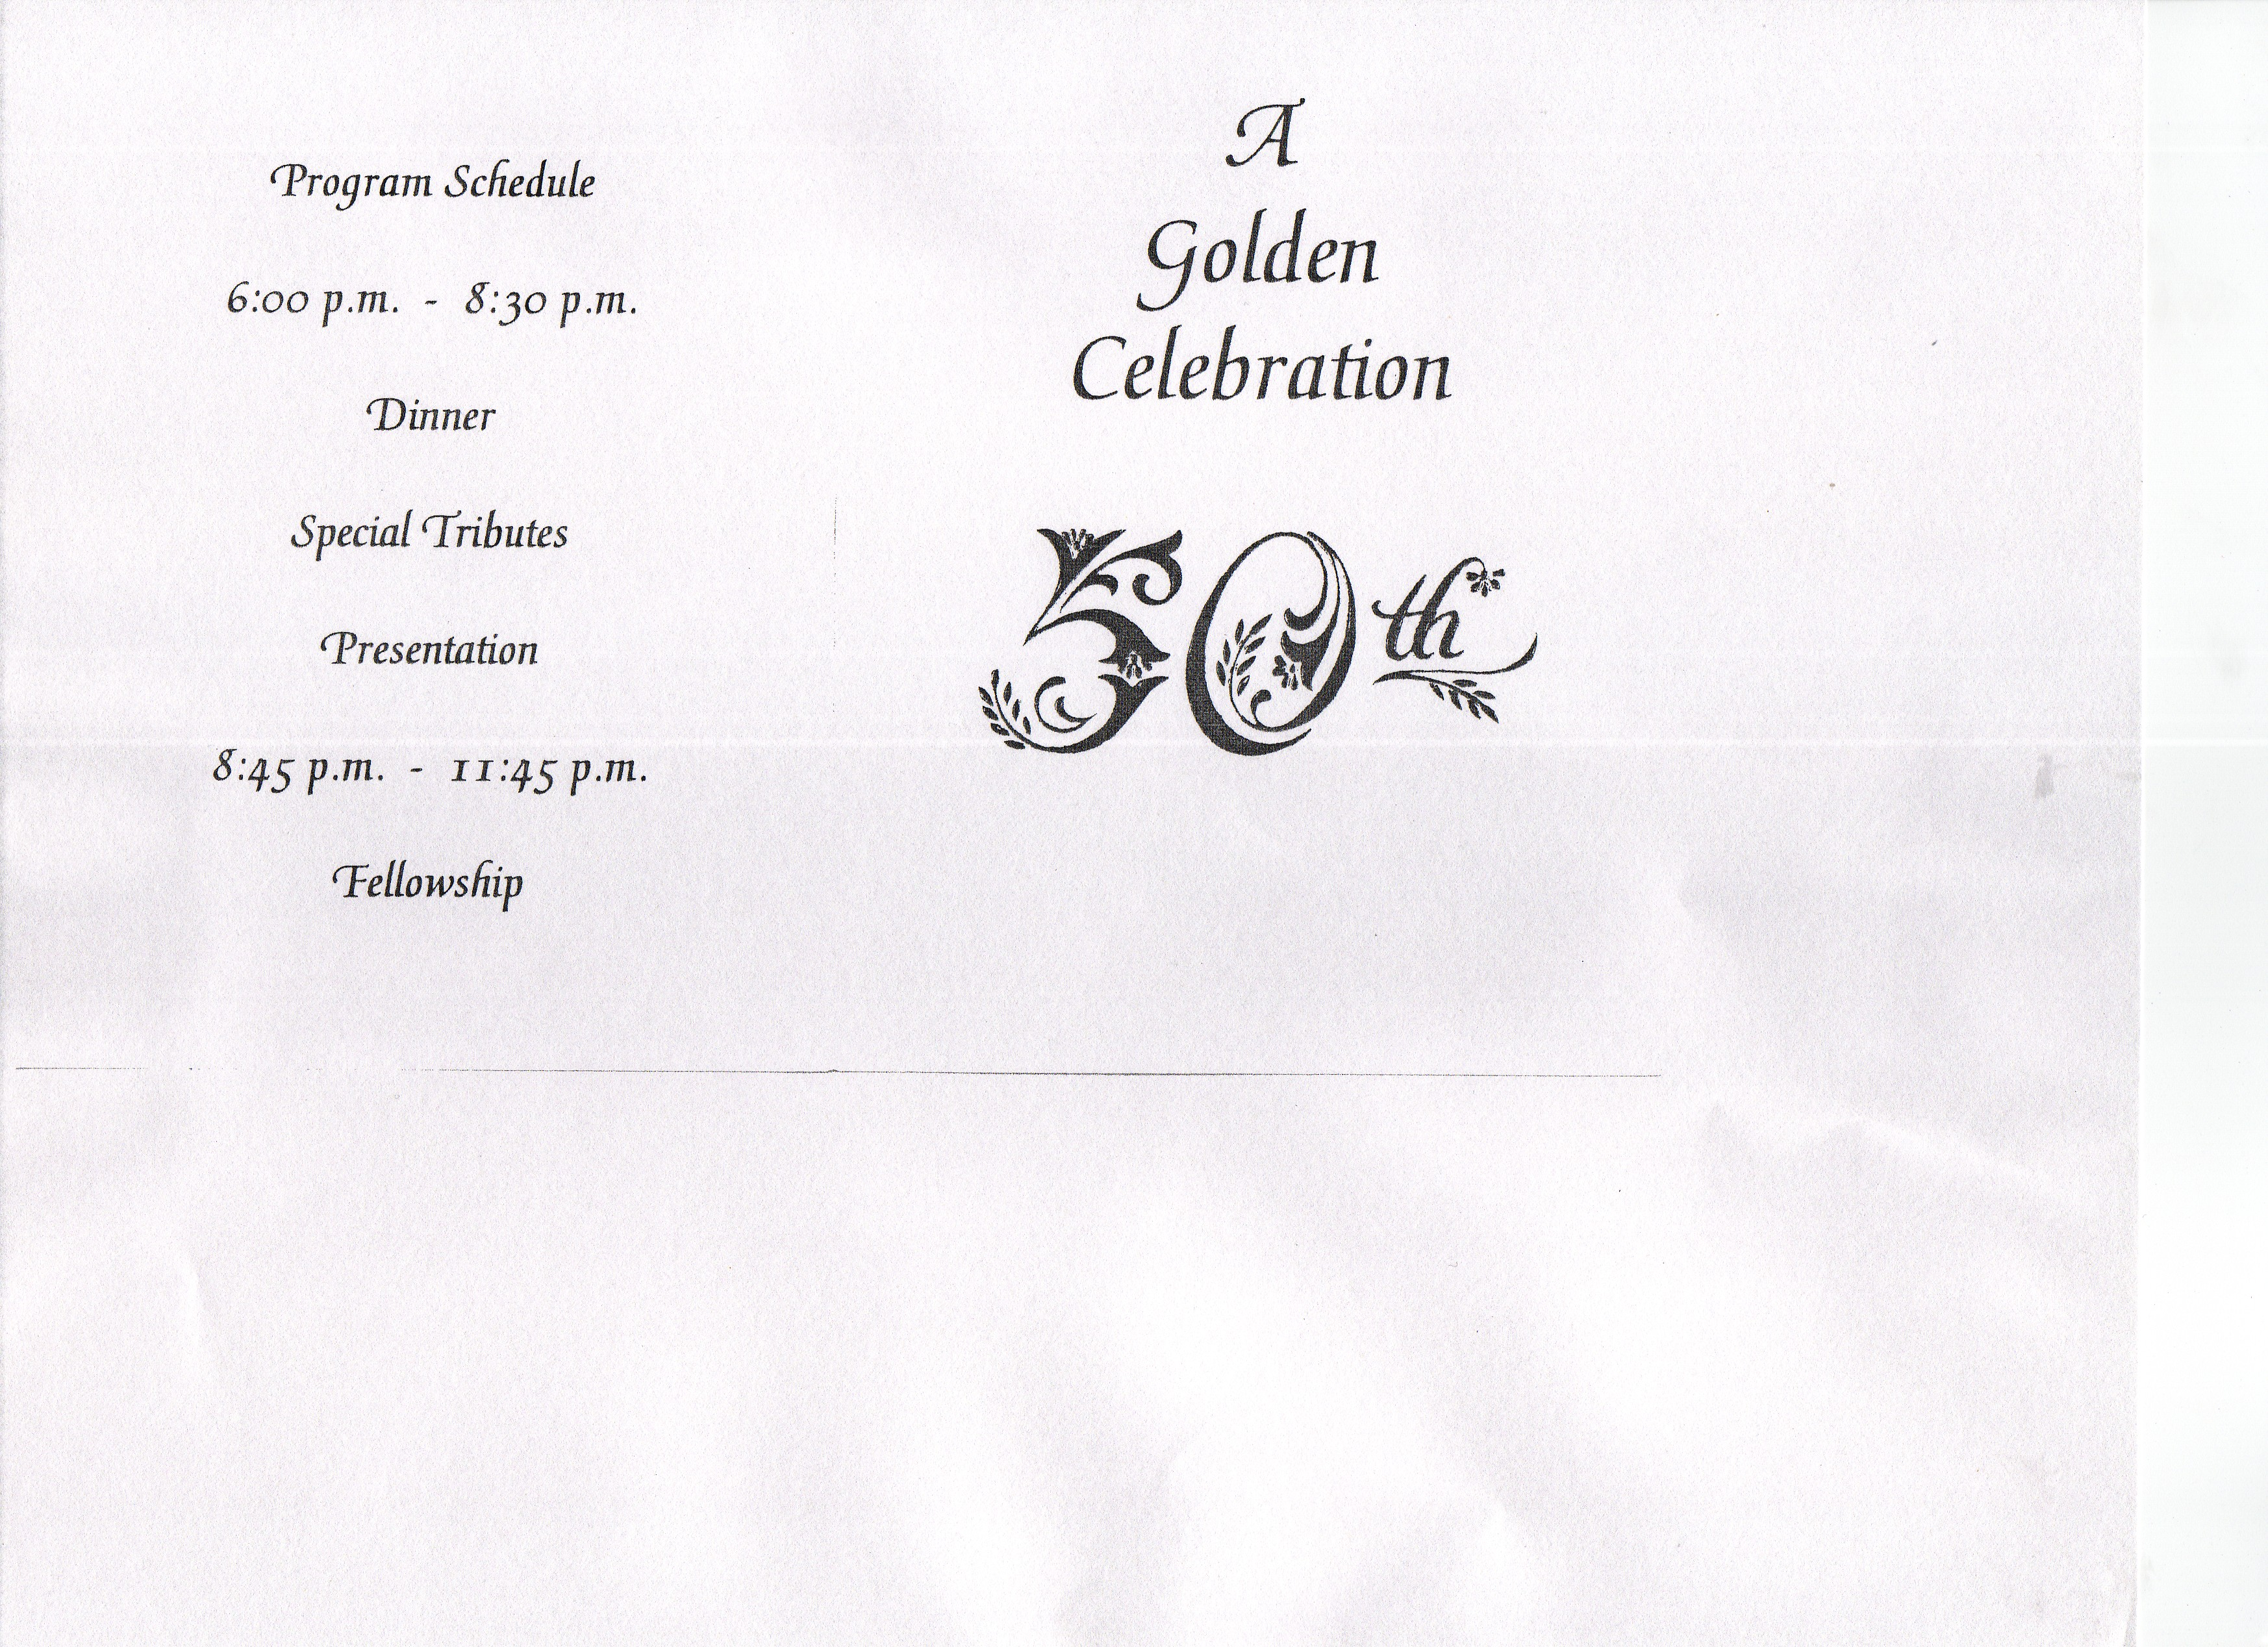 Rev. James Holley 50th Birthday Celebration Program